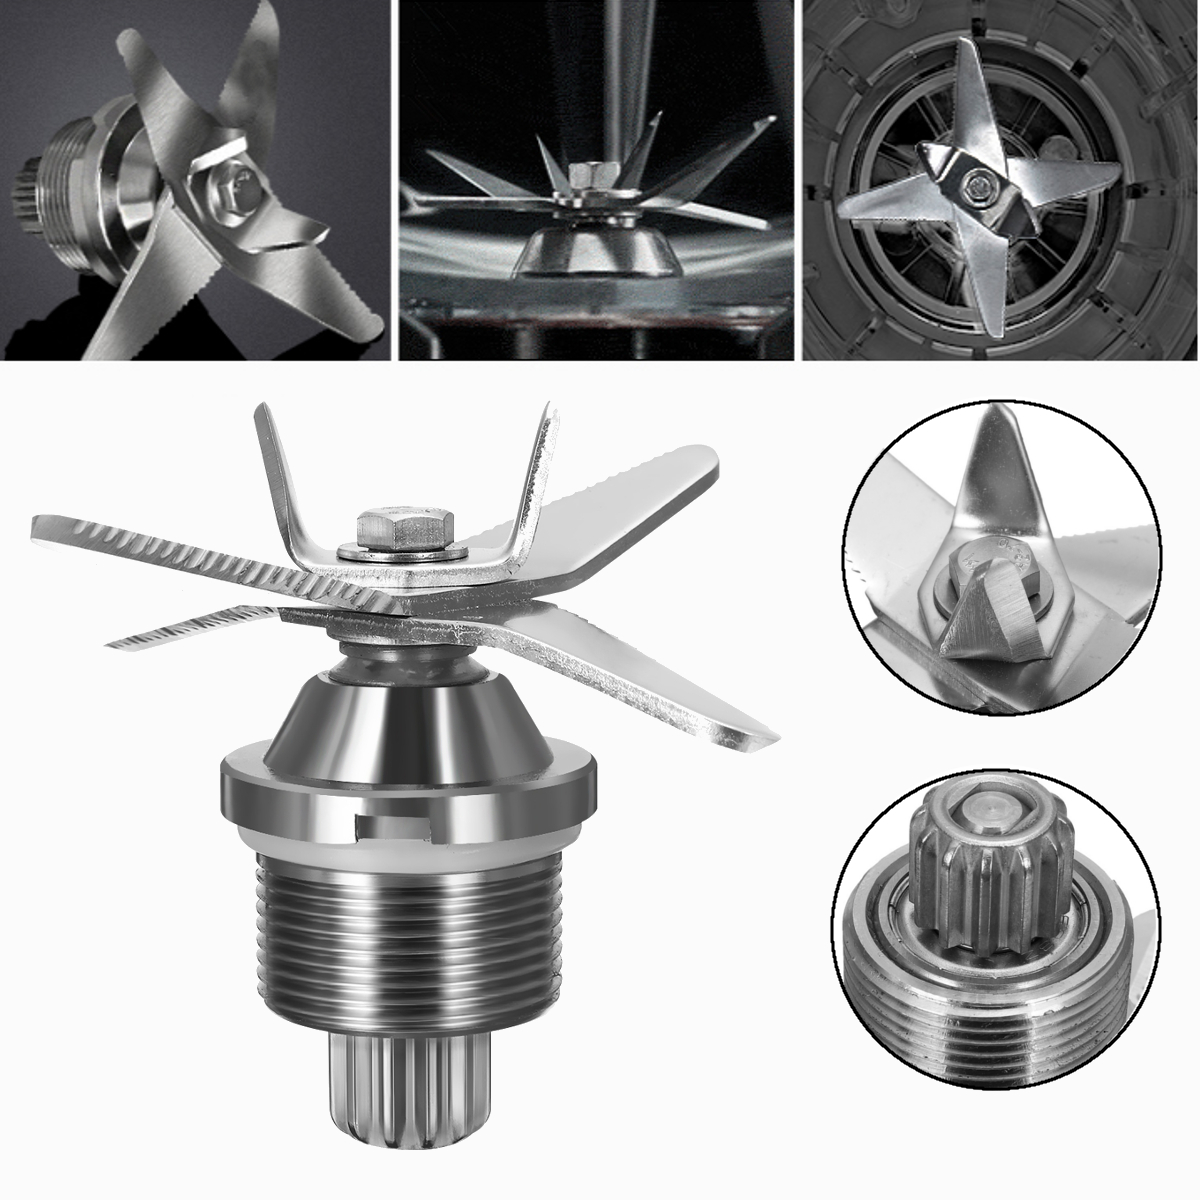 Fit For G7400/G7700 Blenders Blenders Cutter Head Stainless Steel Silver High Hardness Durable стоимость